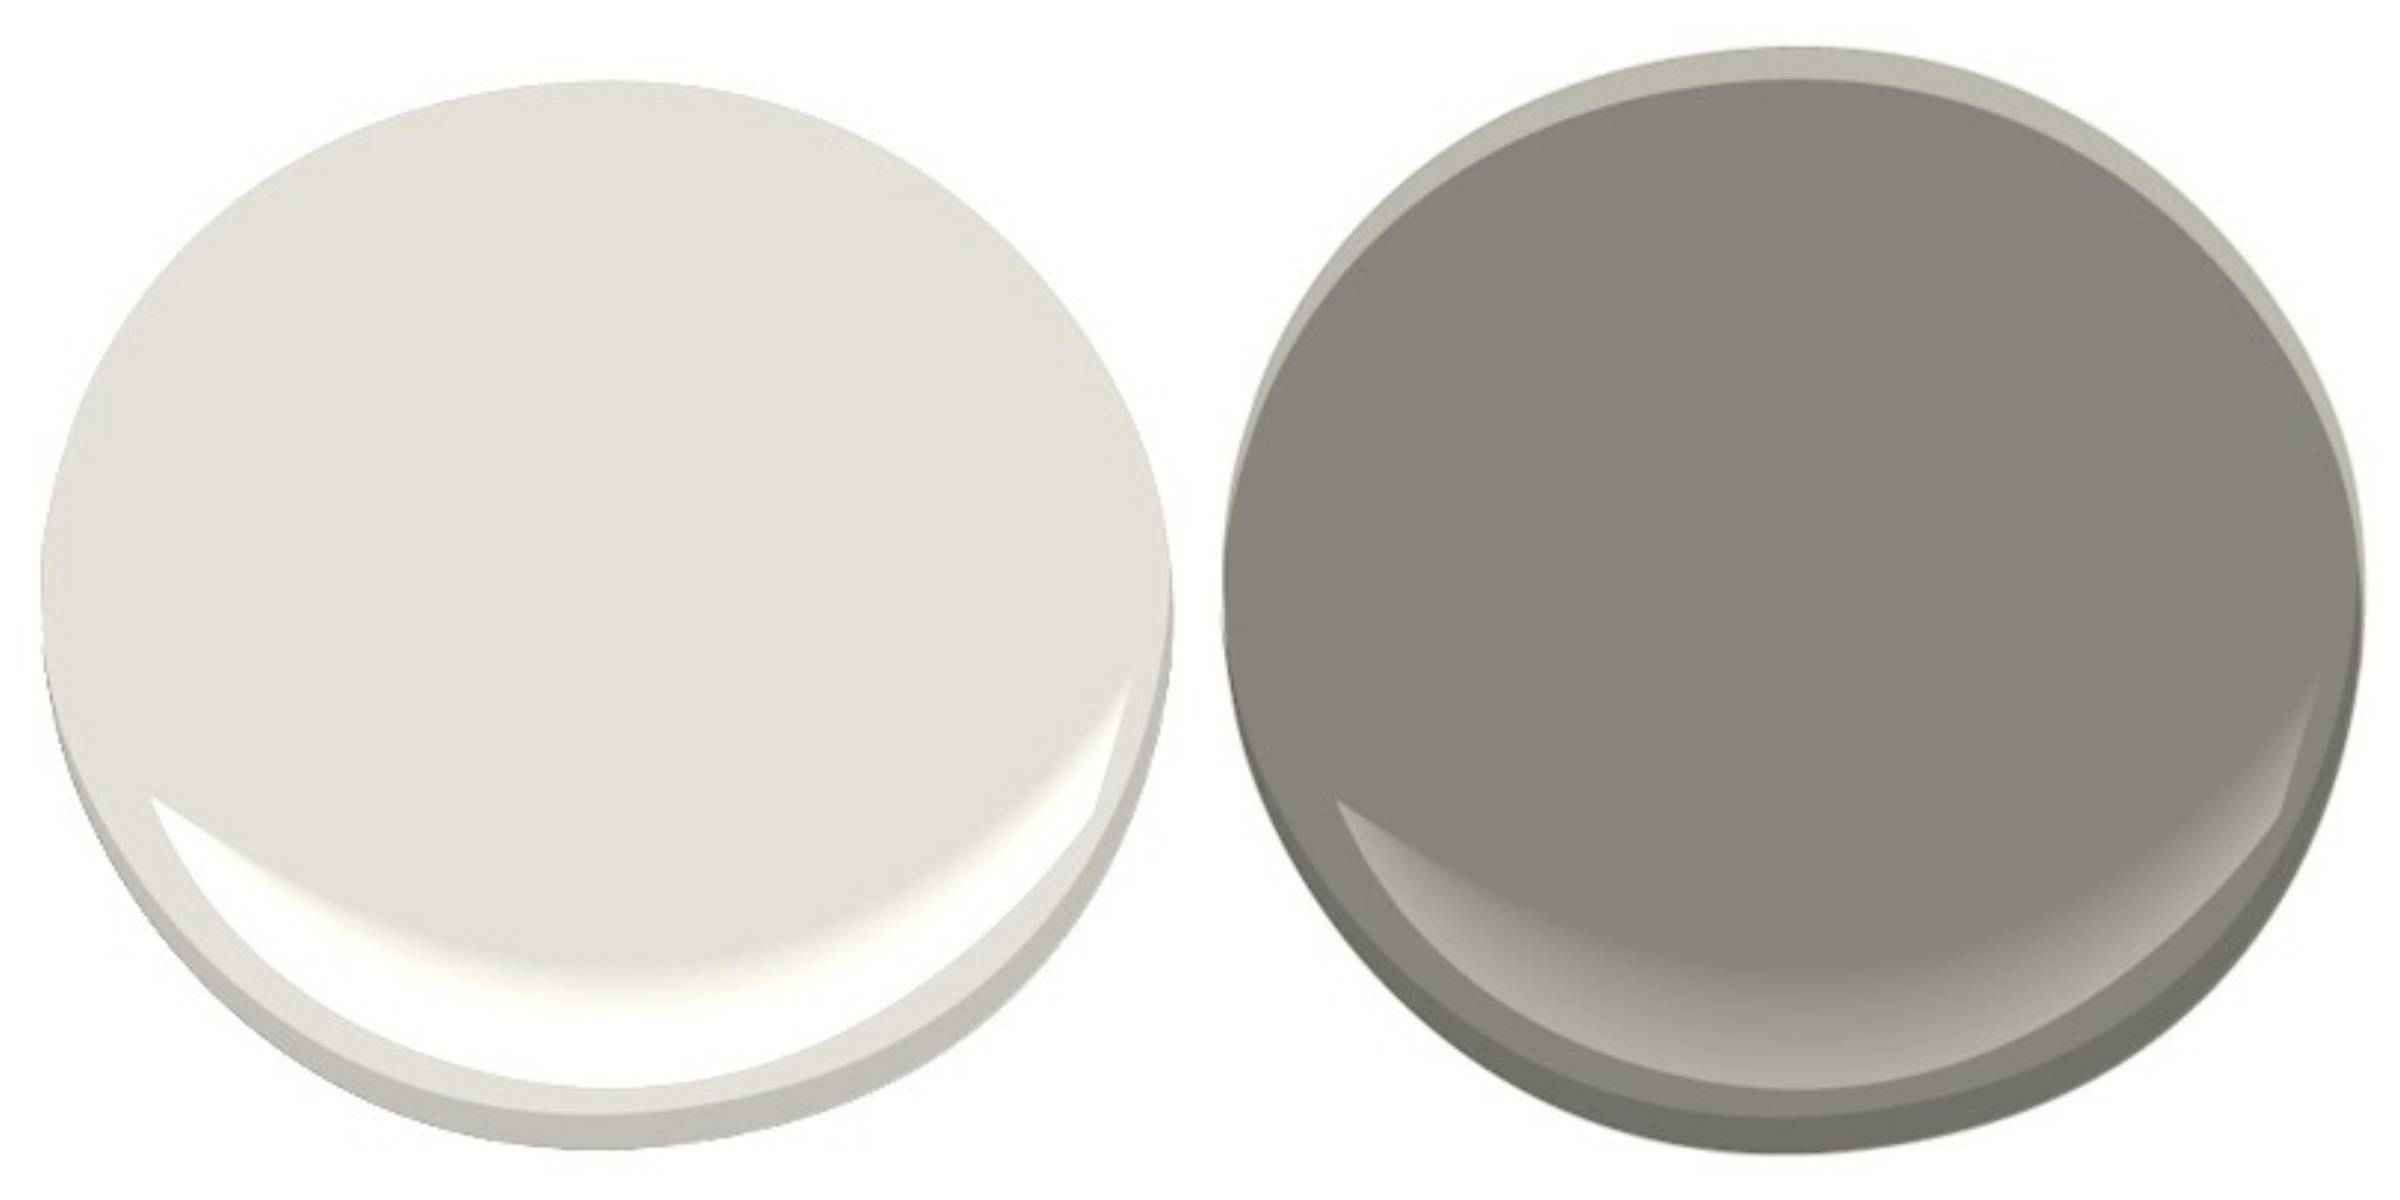 My notting hill blog - Family Room Painting Easypaint Classic Grey Chelsea Grey